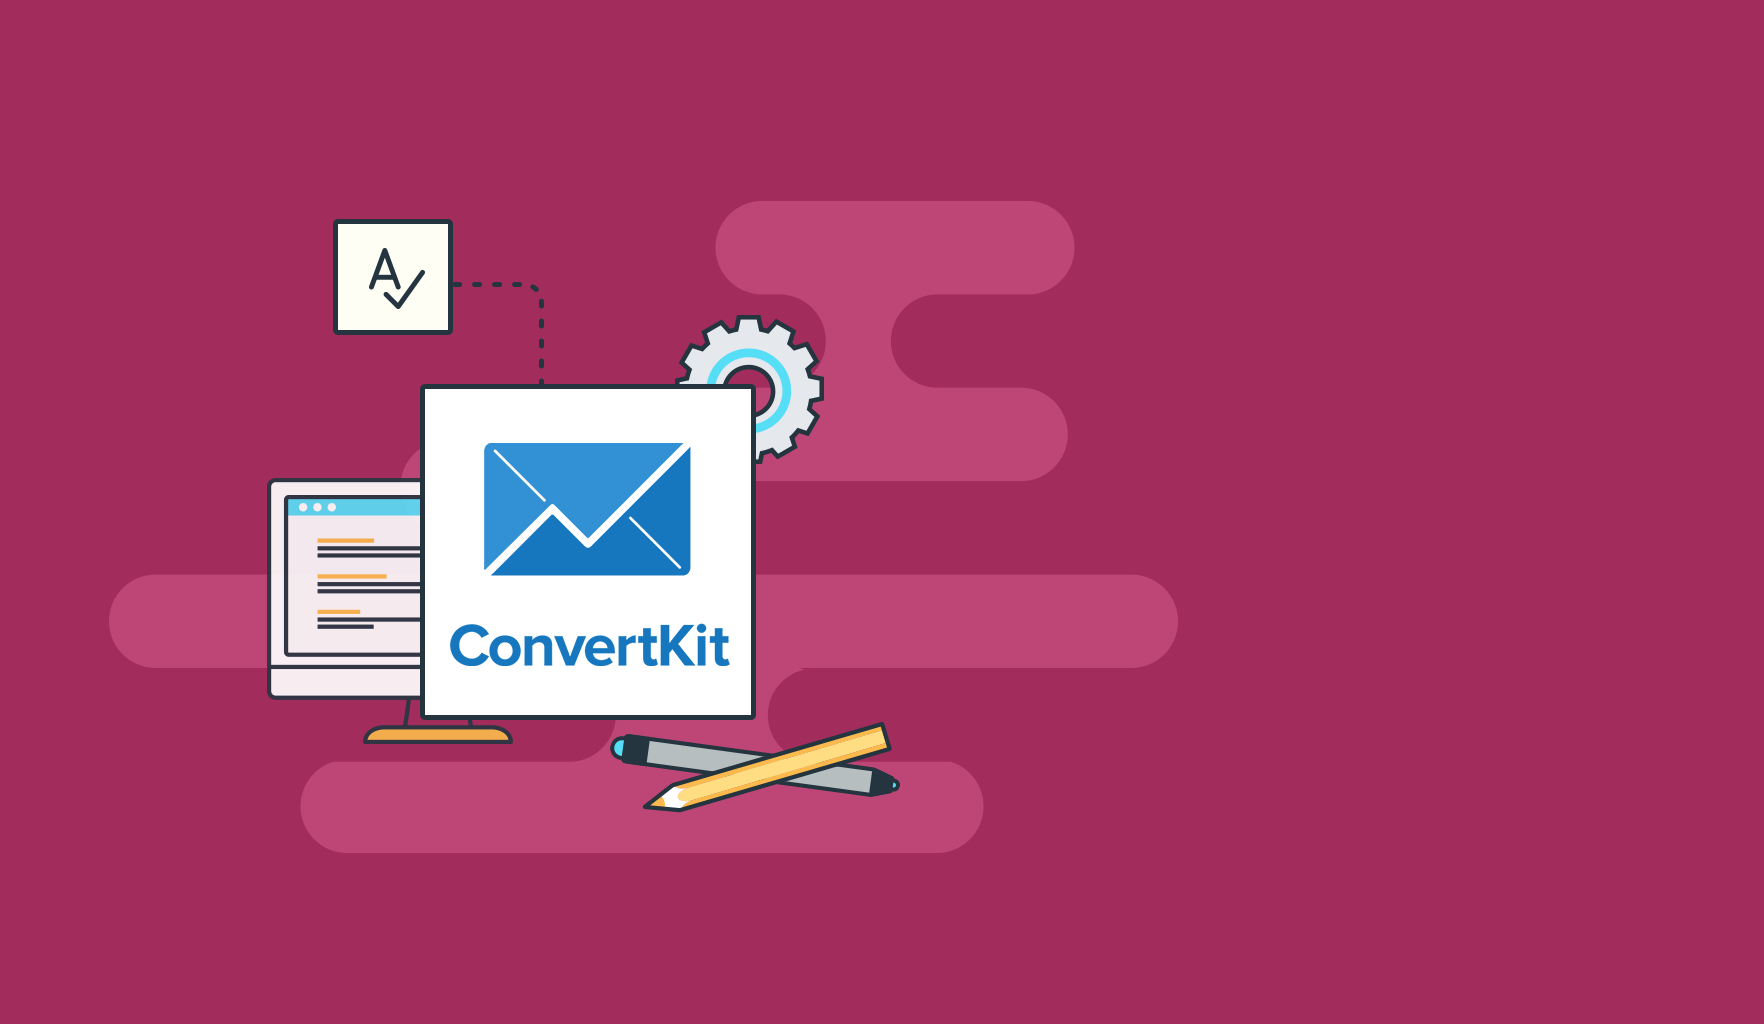 Best Alternative To Convertkit 2020